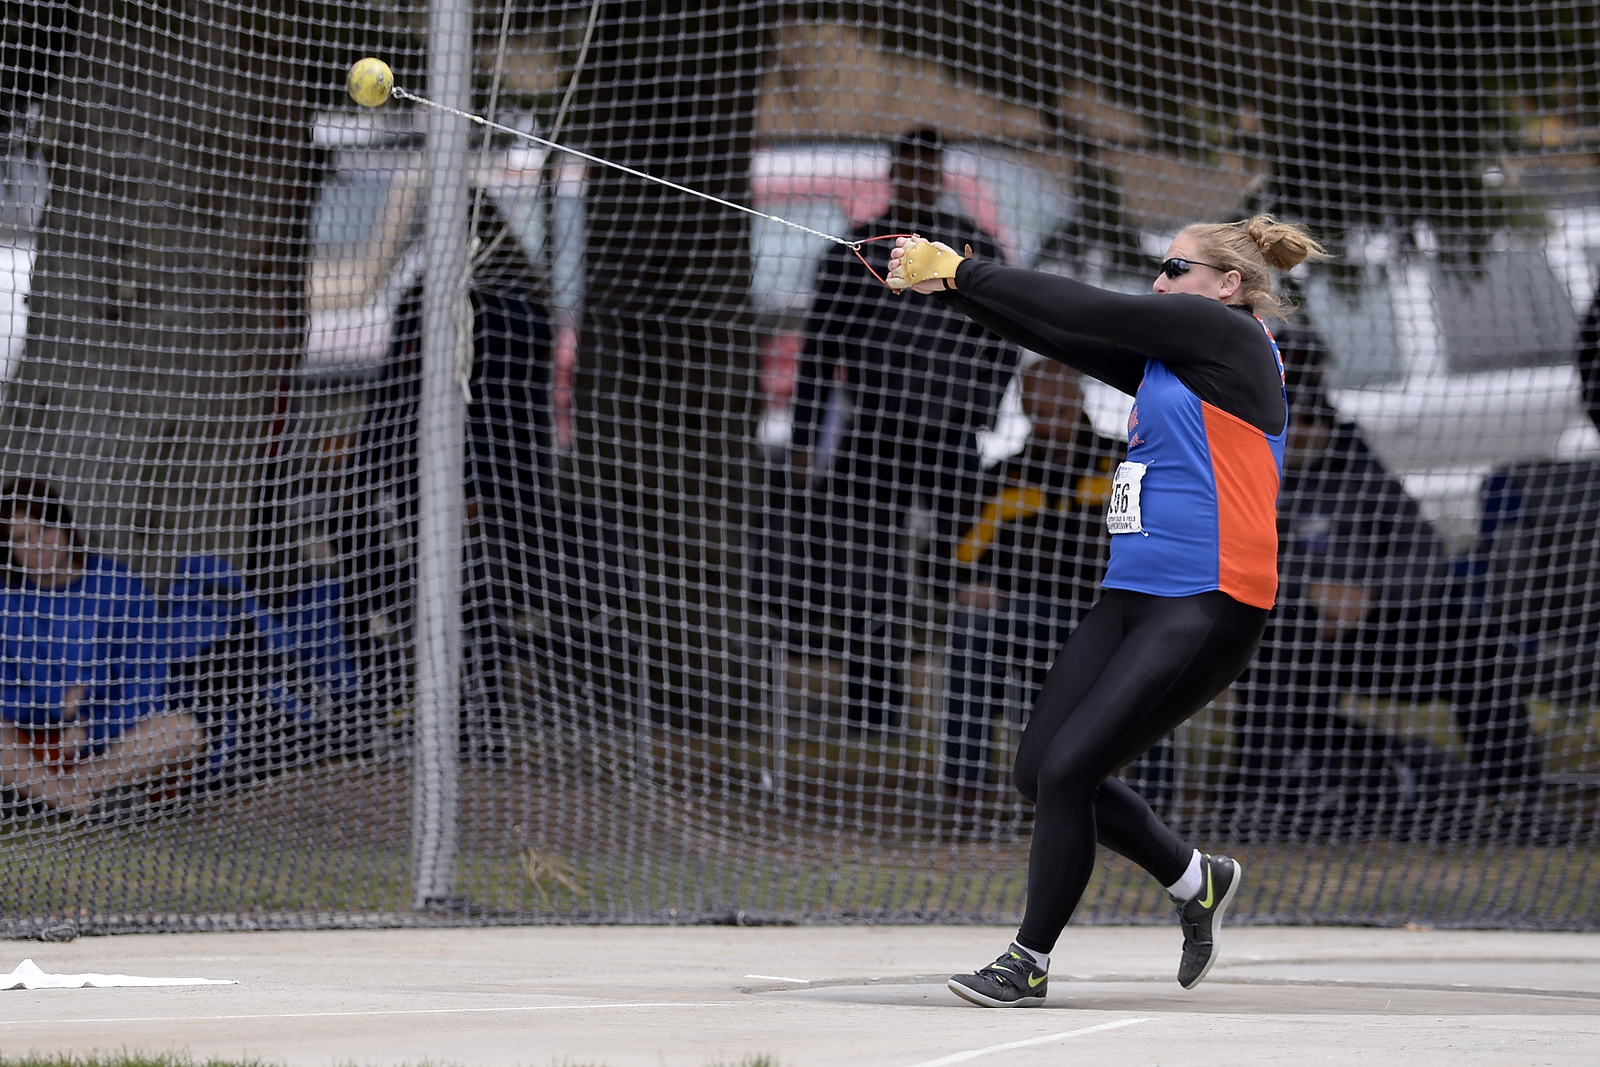 Hayli Bozarth is headed to Eugene, Ore. for nationals in the hammer throw